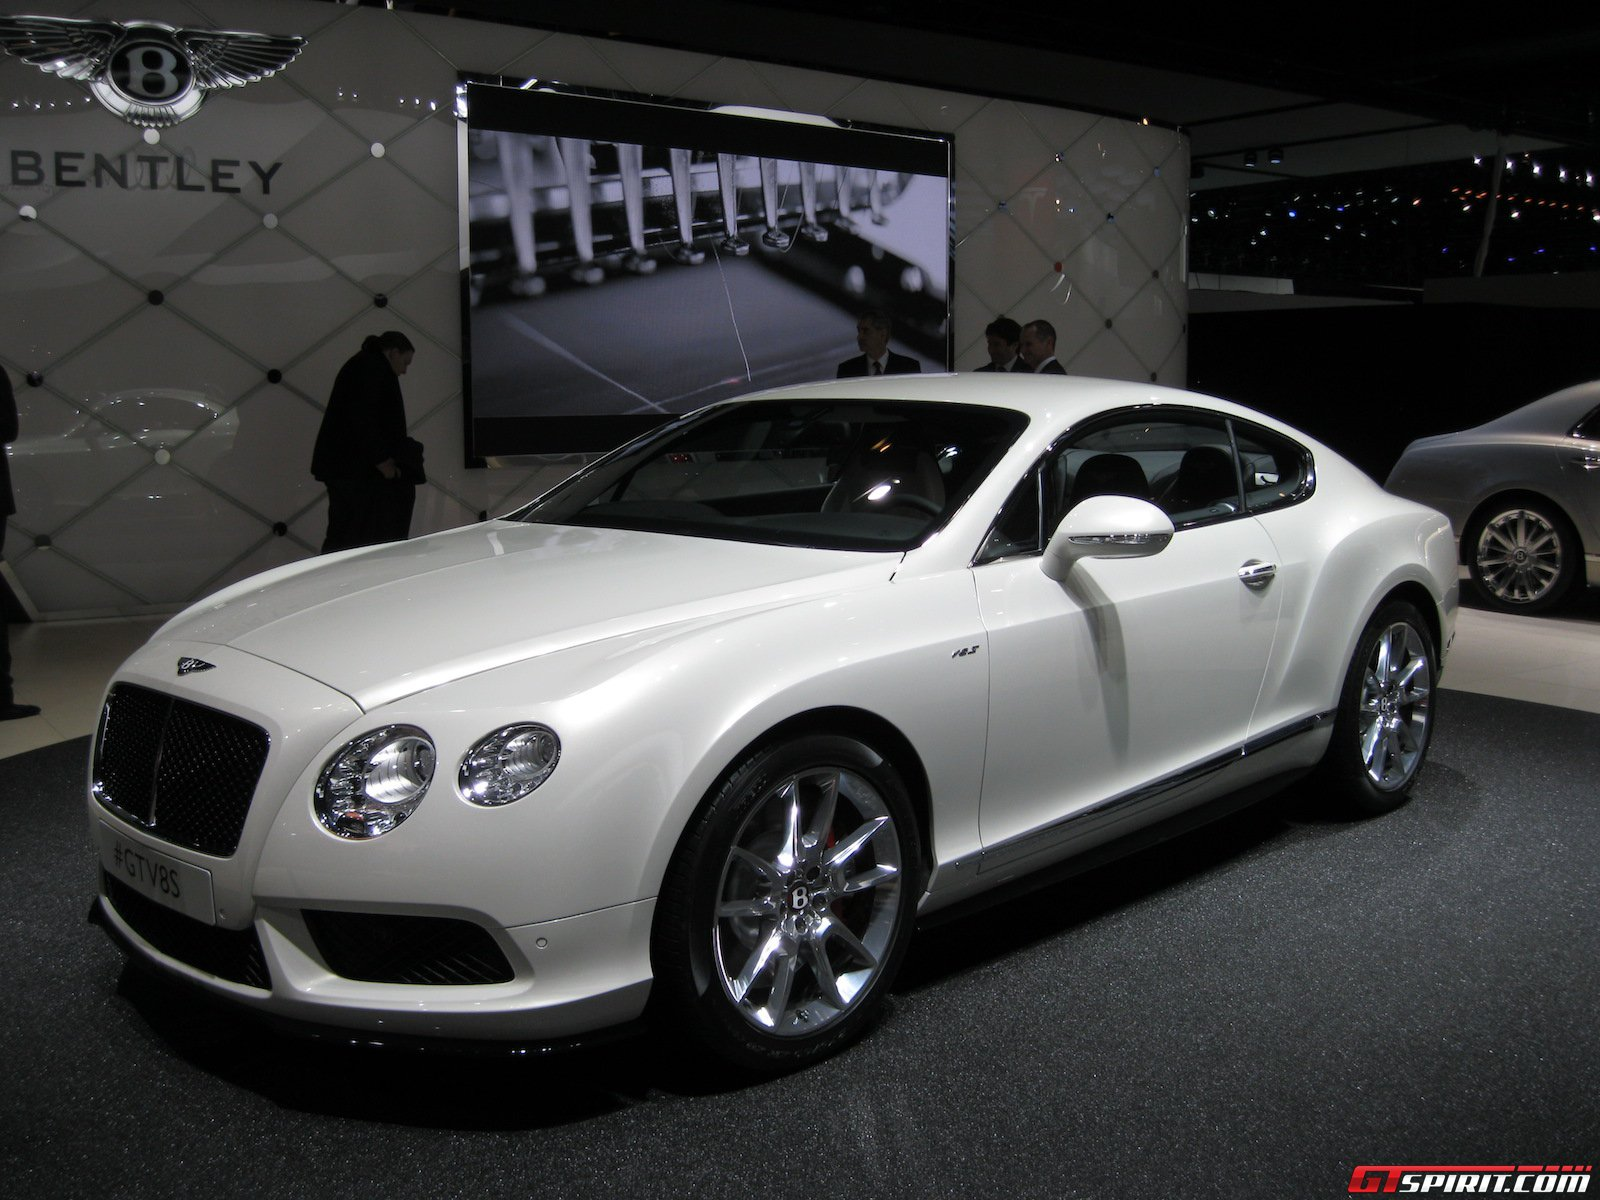 2019 Bentley Continental GT V8 S photo - 3